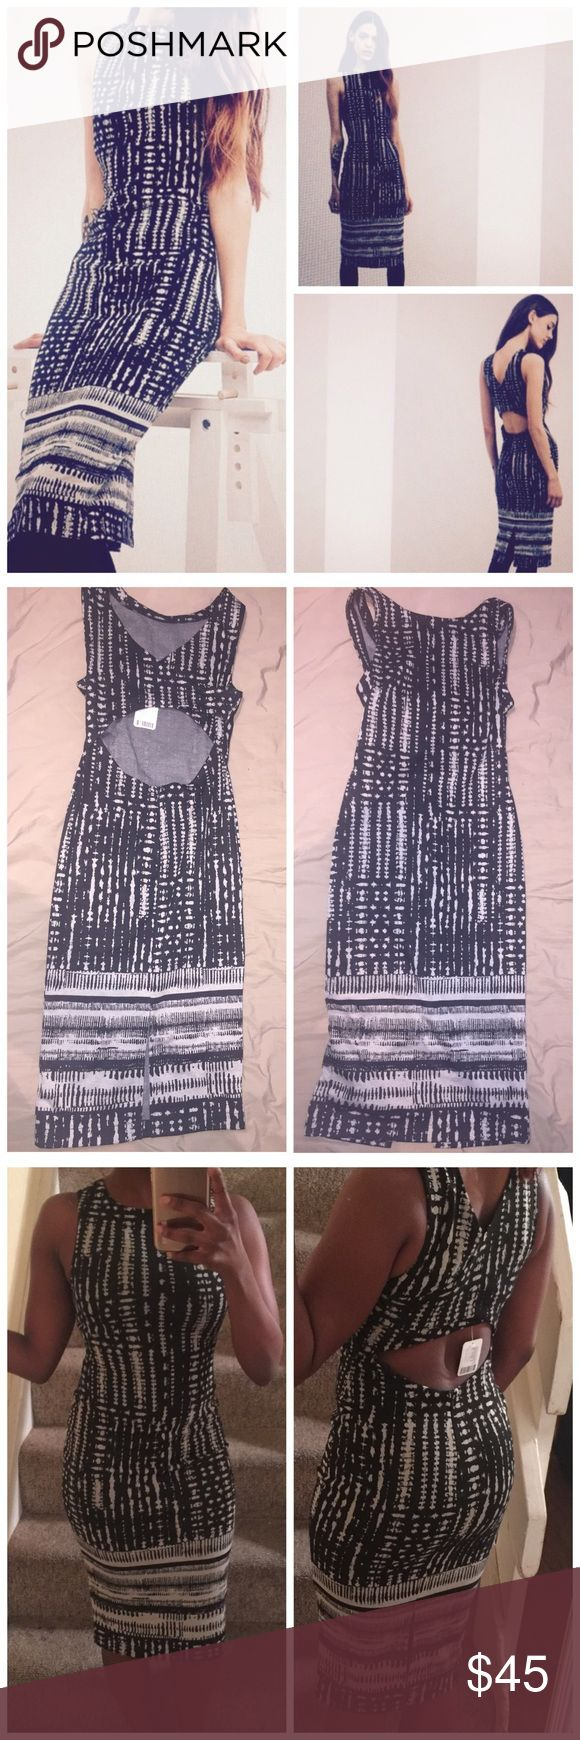 NWT Silence + Noise Midi Dress Black motif dress with cream beige pattern and open back. Perfect condition, NWT. 67% polyester, 32% rayon, 1% spandex. Size is XS. May fit a Small silence + noise Dresses